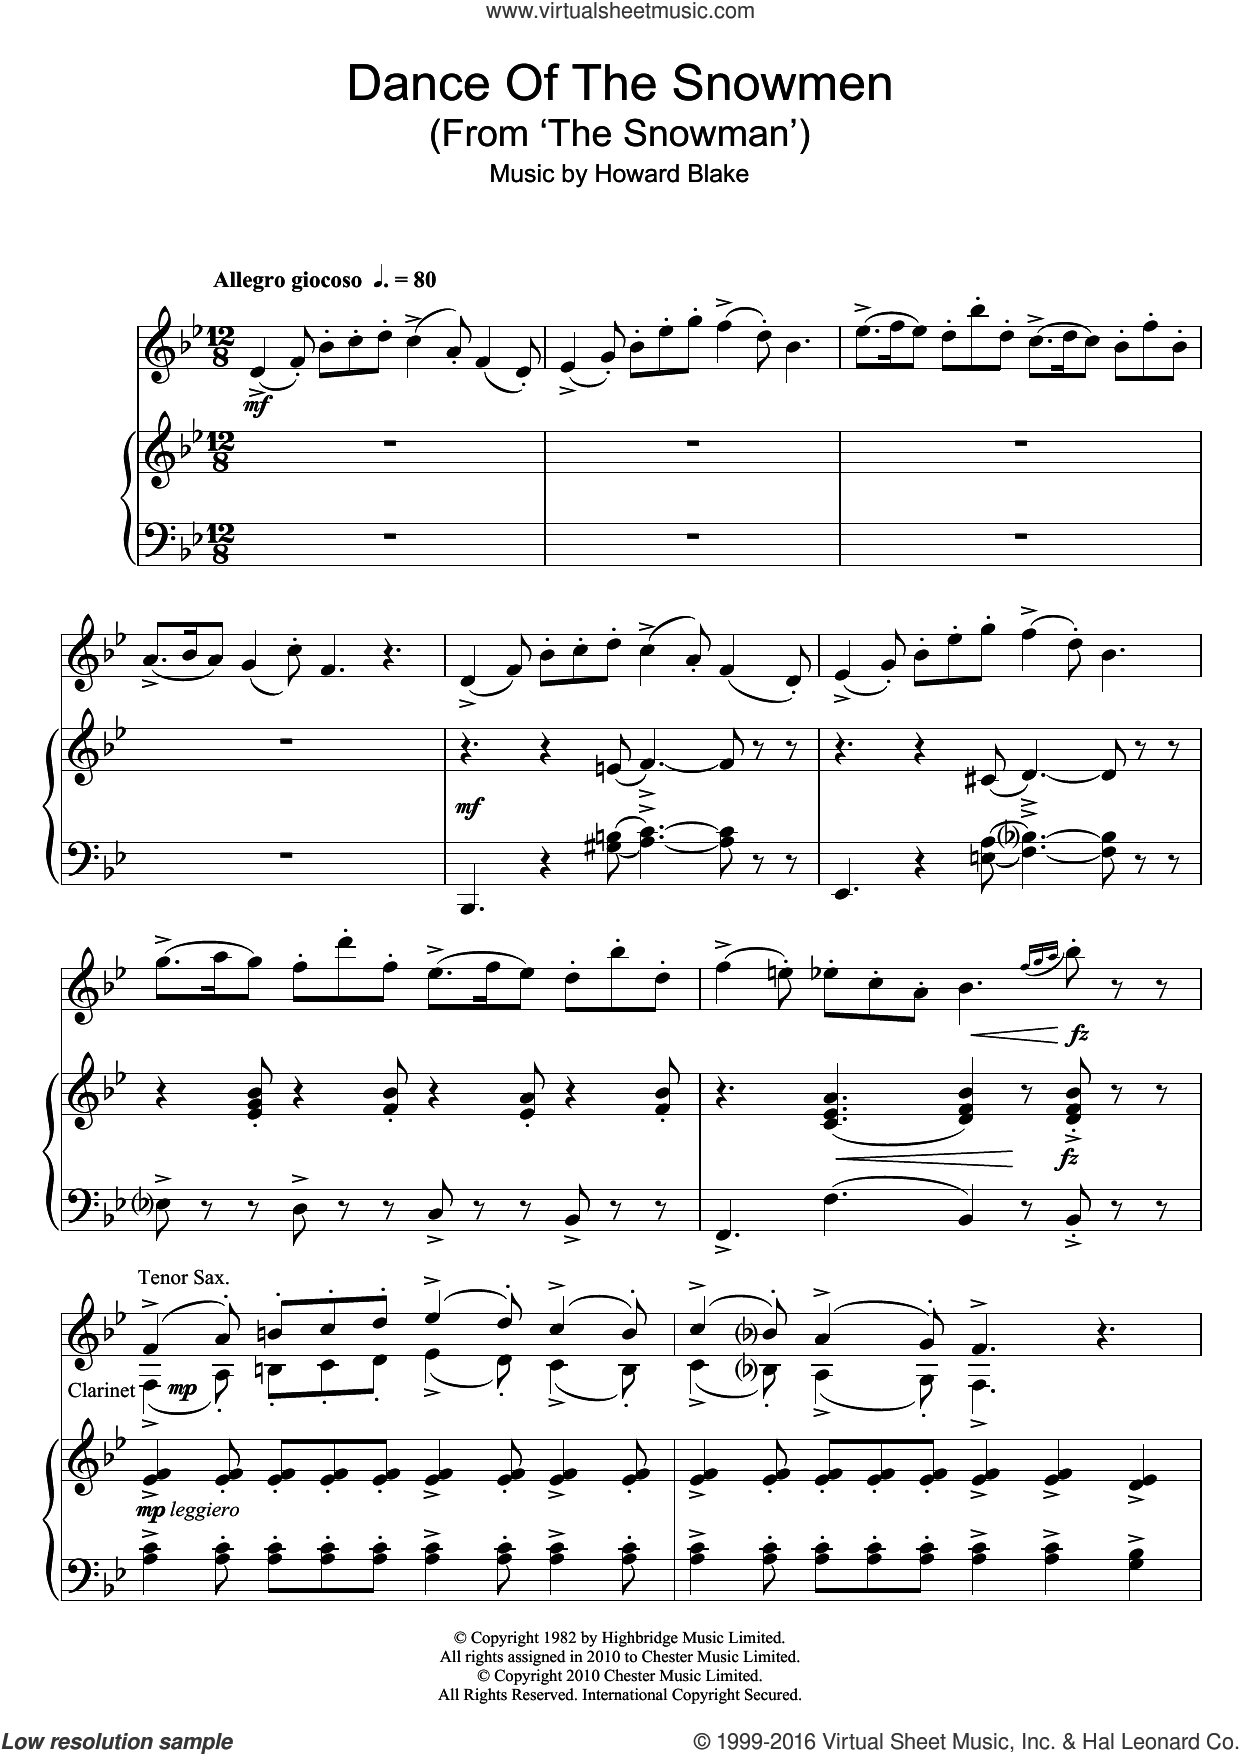 Dance Of The Snowmen (from The Snowman) sheet music for clarinet solo by Howard Blake, intermediate skill level